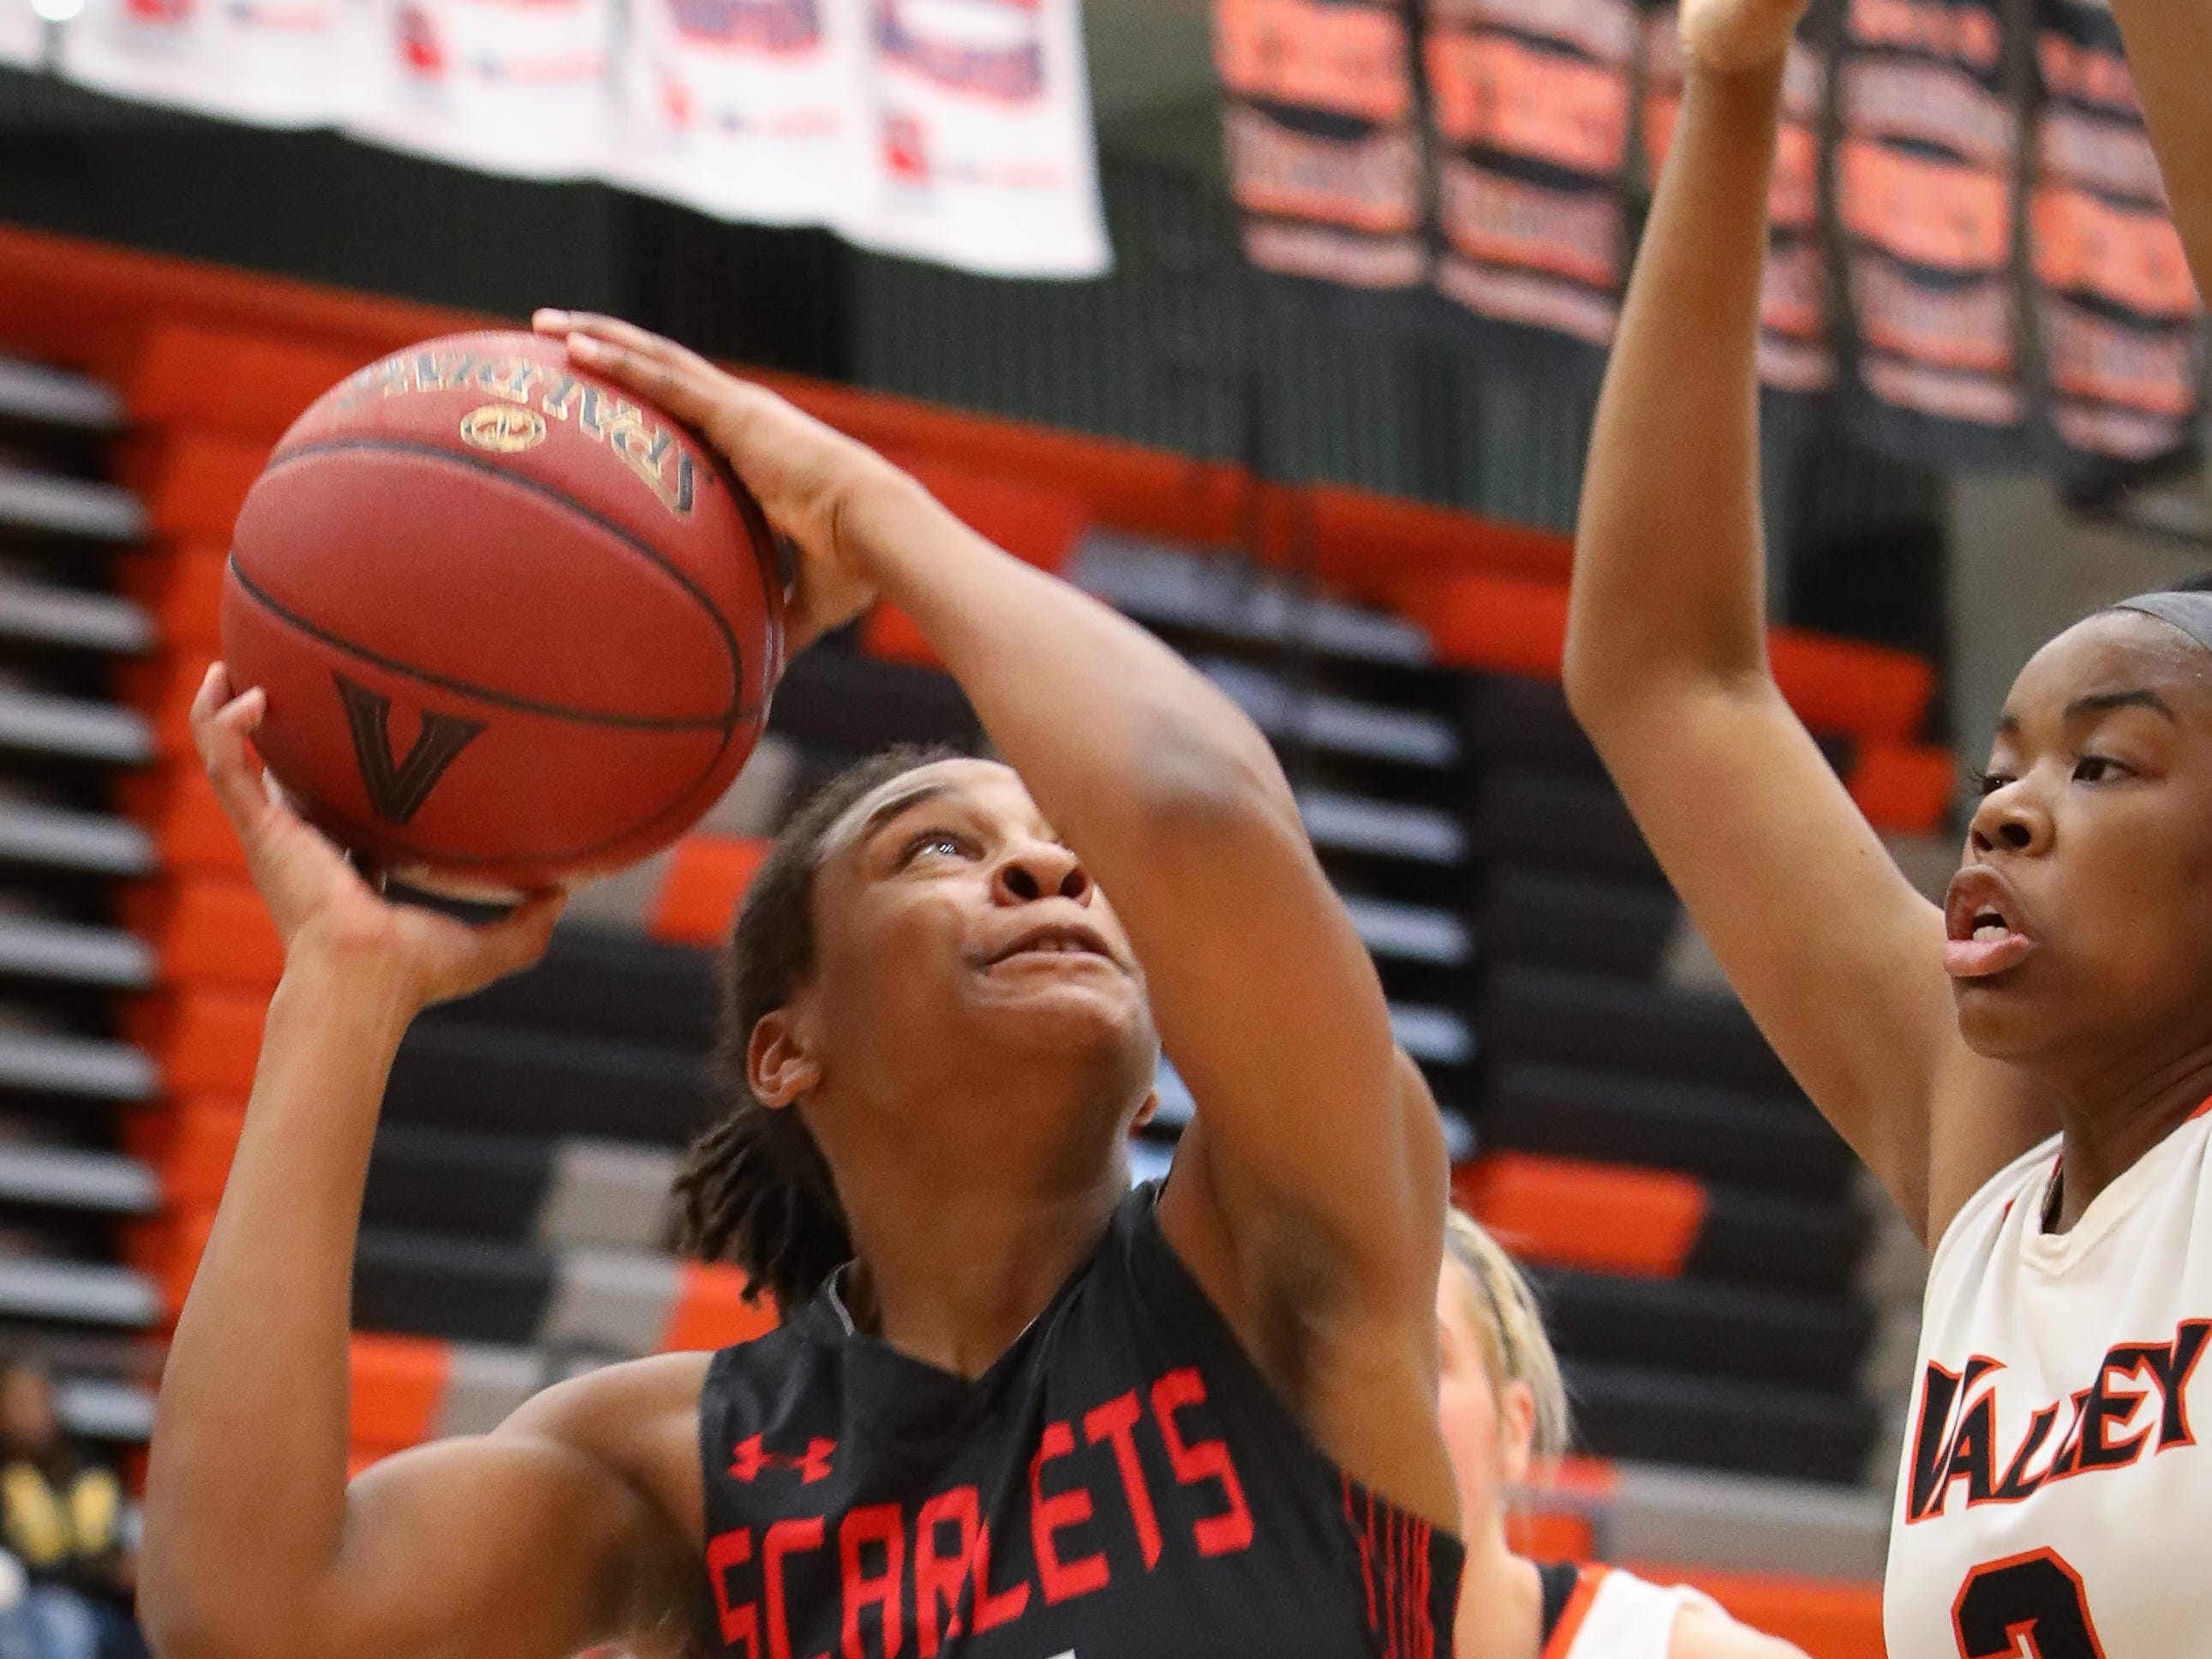 East senior Tatiana Hodges-Johnson goes for a layup during a girls high school basketball game between the East Scarlets and the Valley Tigers at Coldiron Fieldhouse at Valley High School on Jan. 8, 2019 in West Des Moines, Iowa.